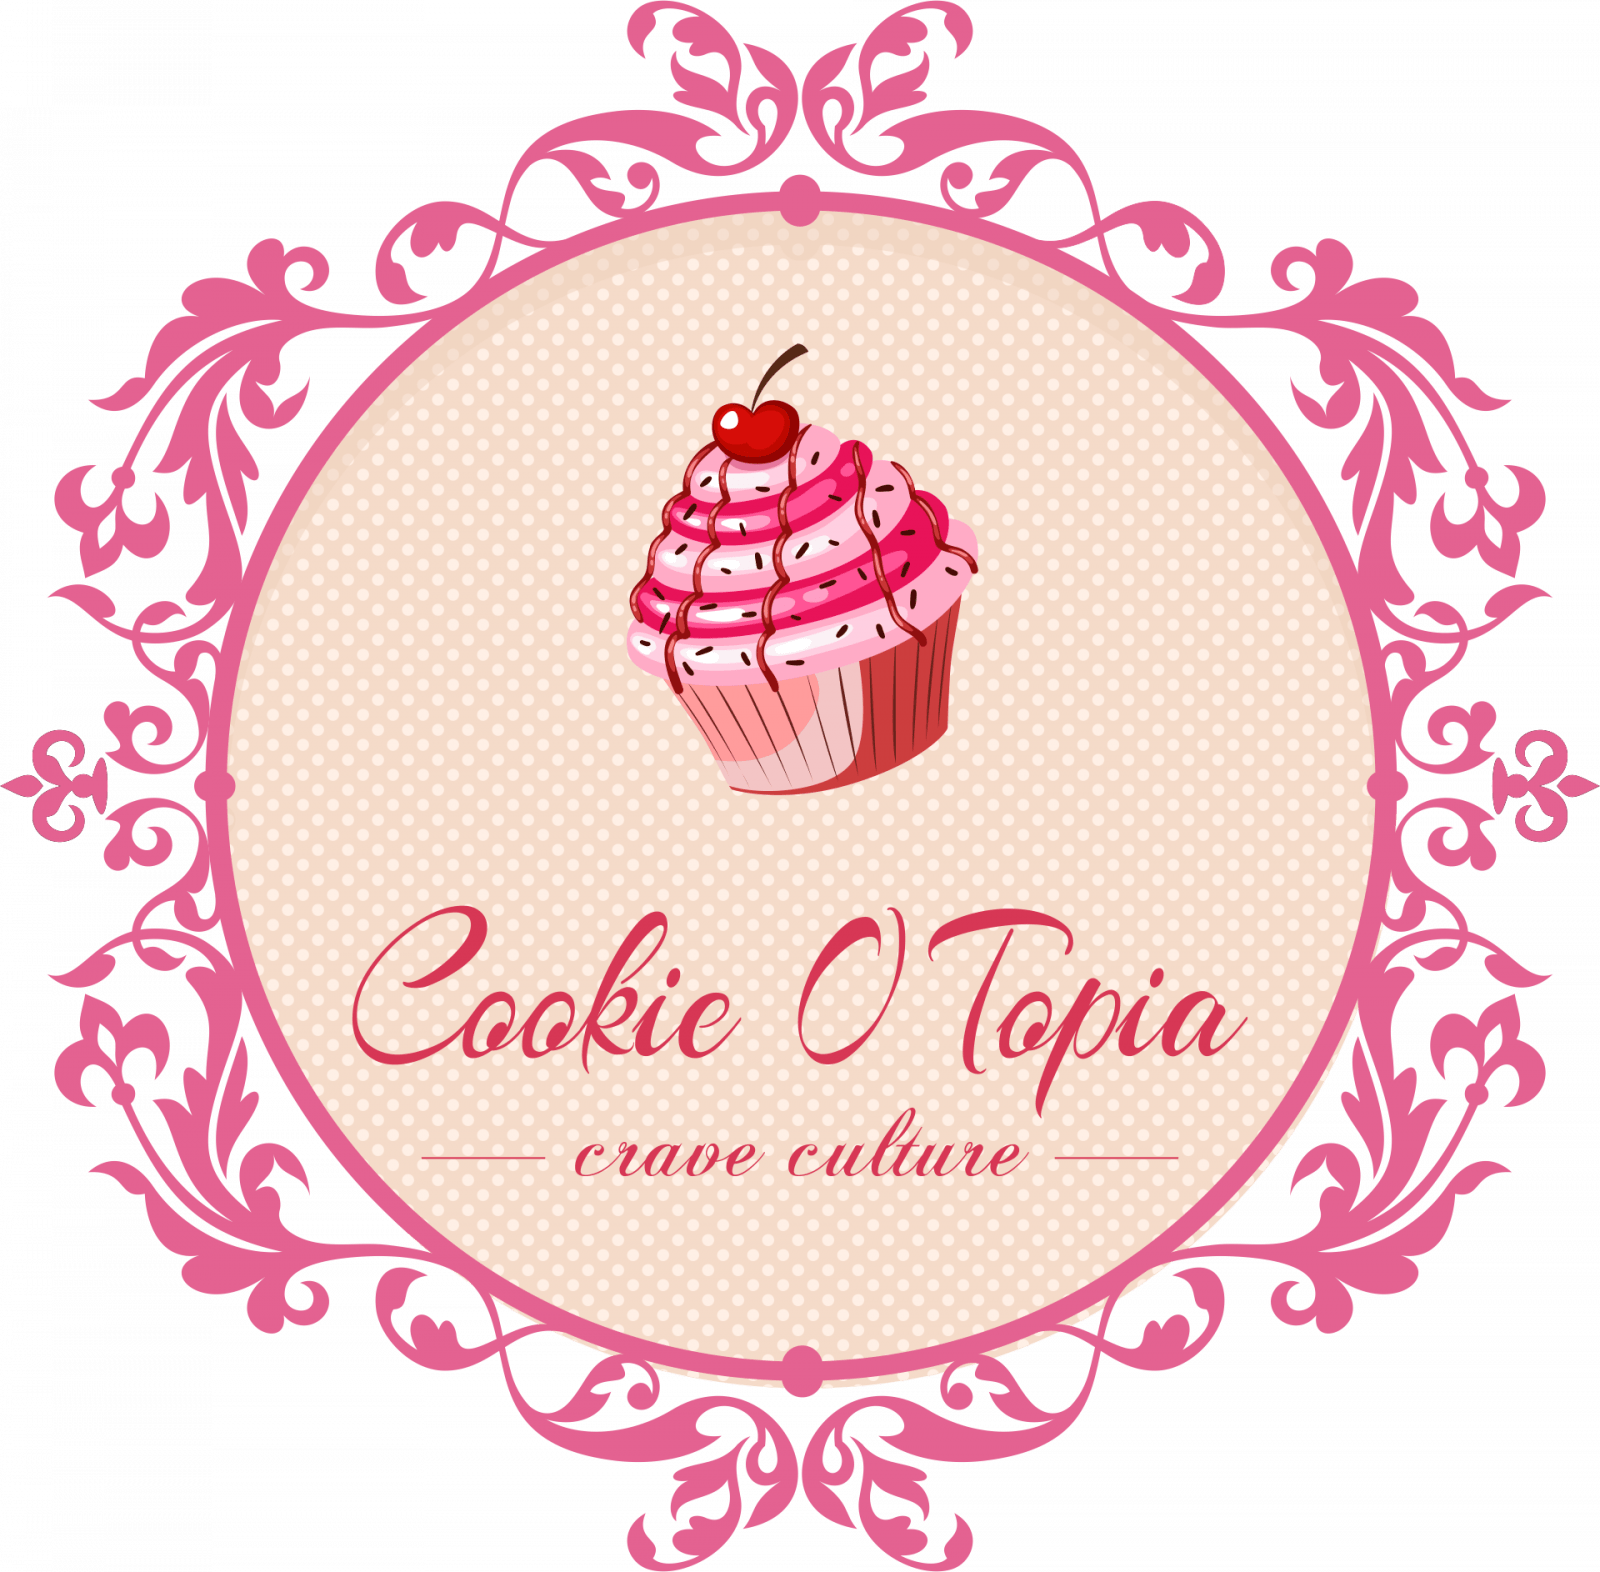 Cookie O Topia